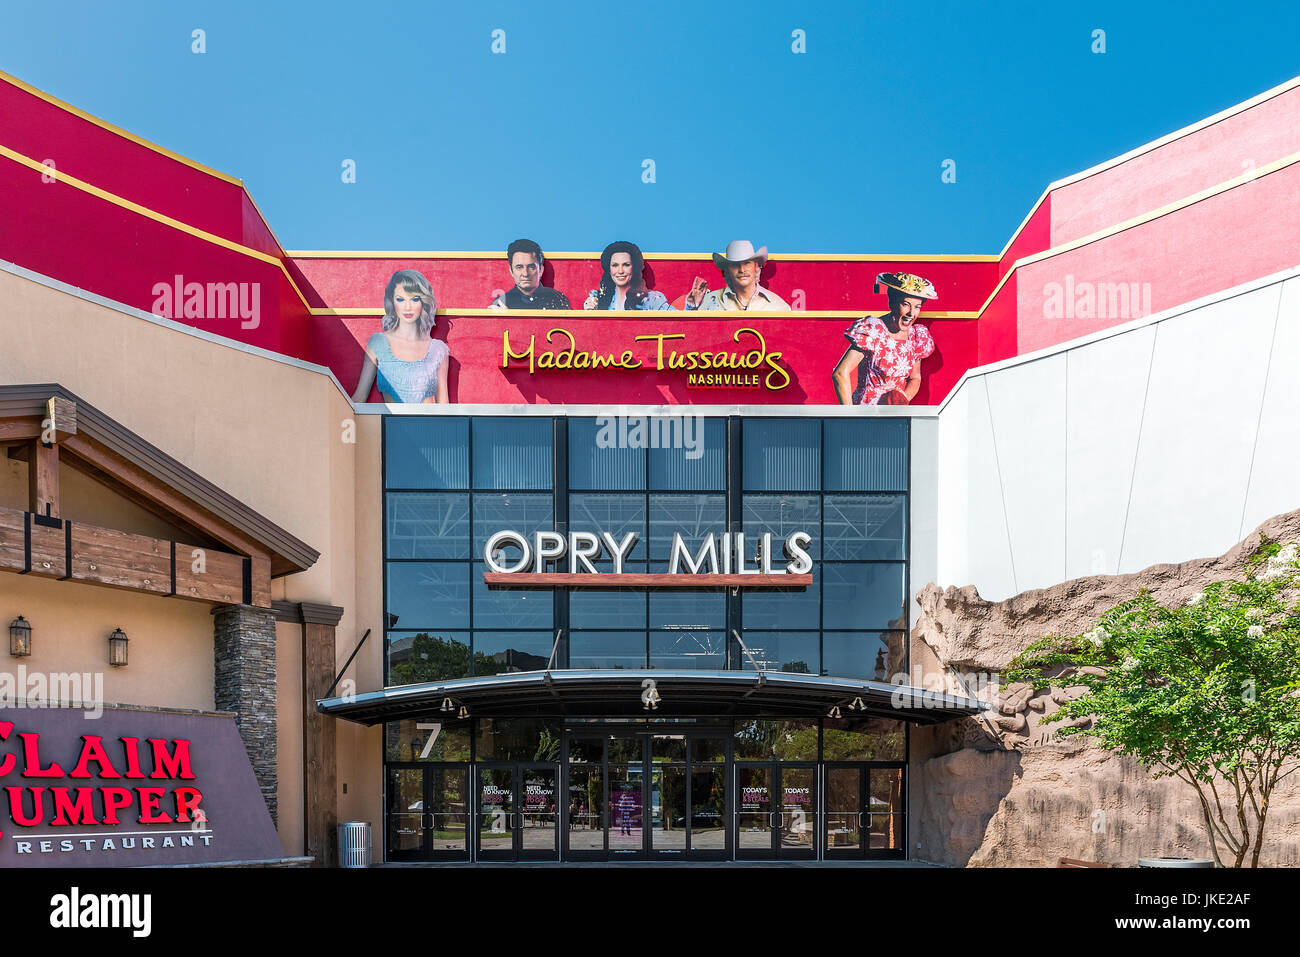 Opry Mills Mall, Nashville, Tennessee, USA. Stockbild